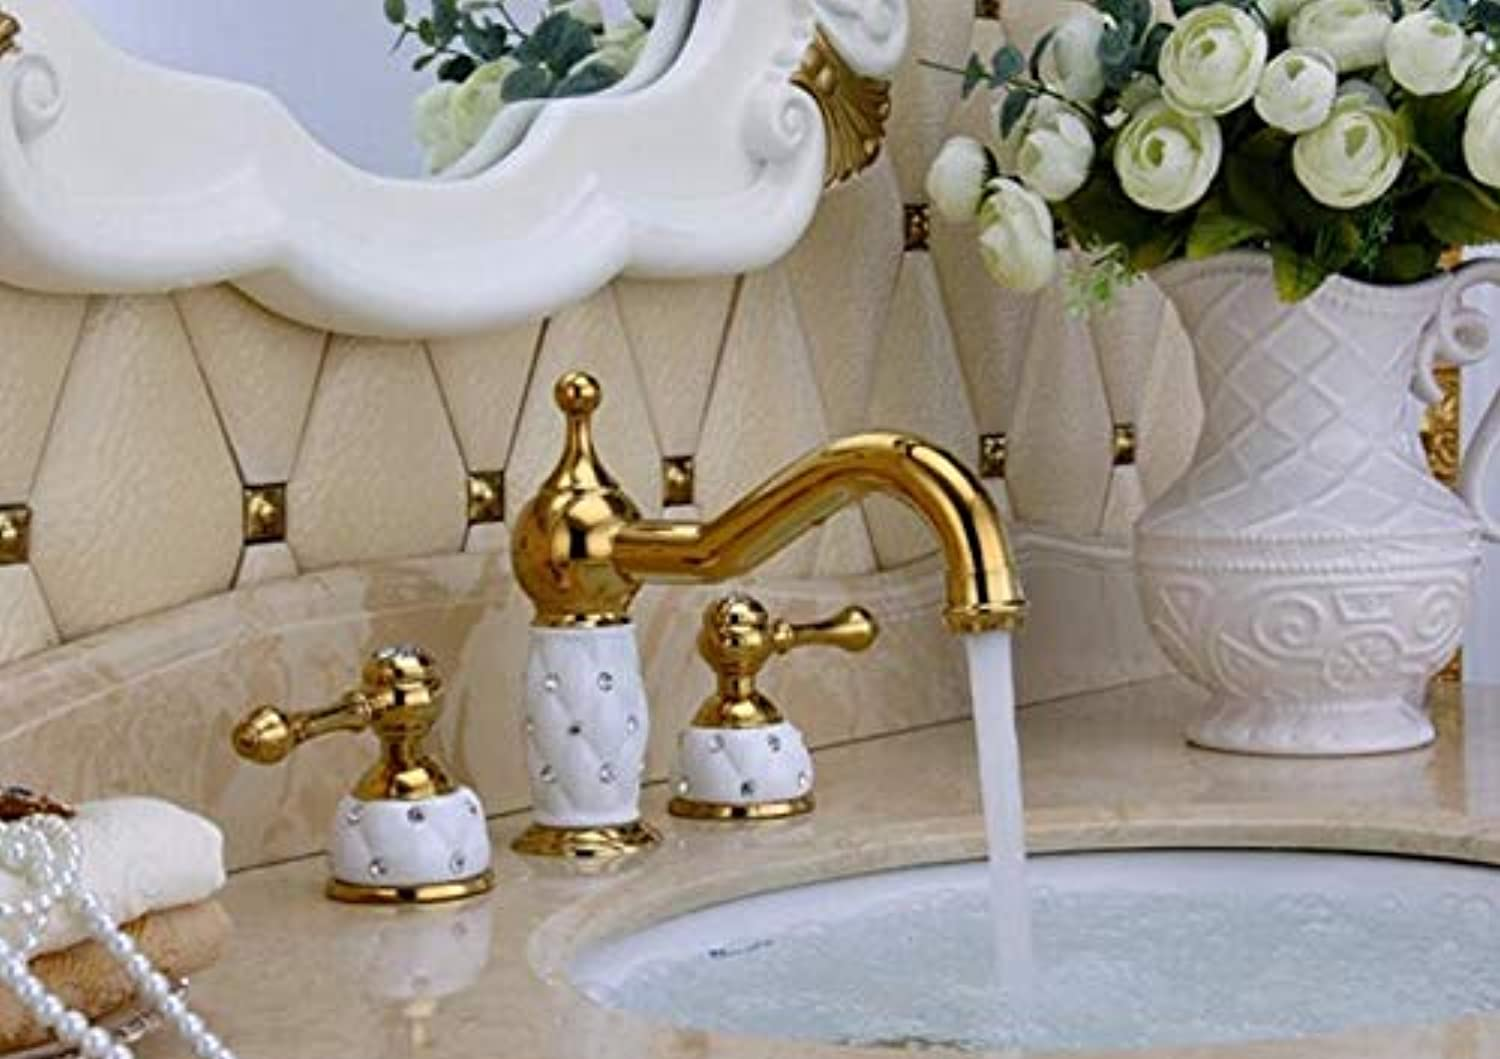 Mkkwp gold and White Finished Luxury Widespread Bathroom Sink Faucet Basin Faucet Tap Mixer Sink Faucet